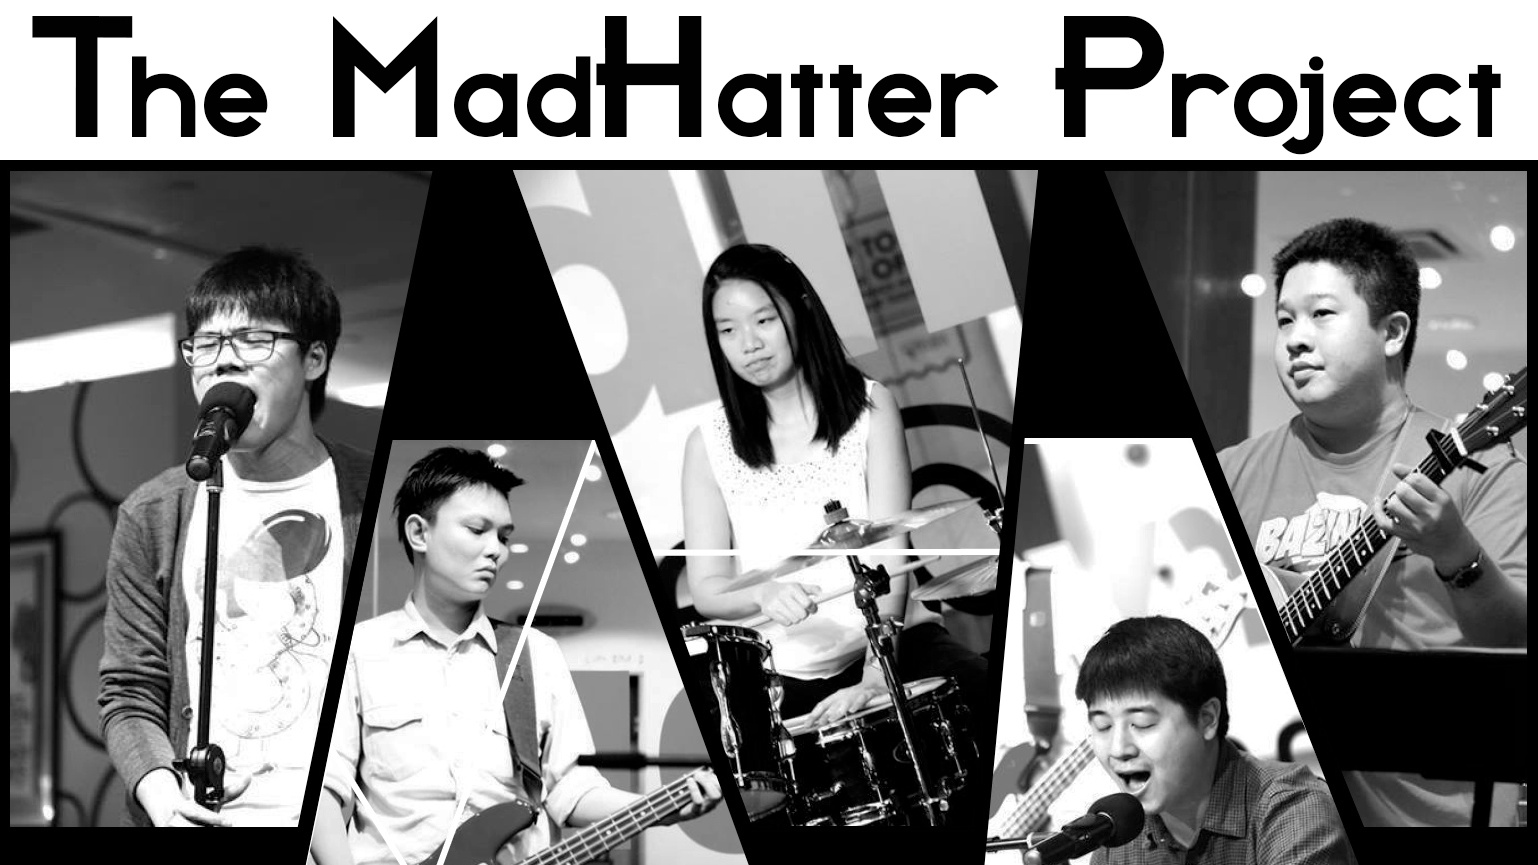 The MadHatter Project